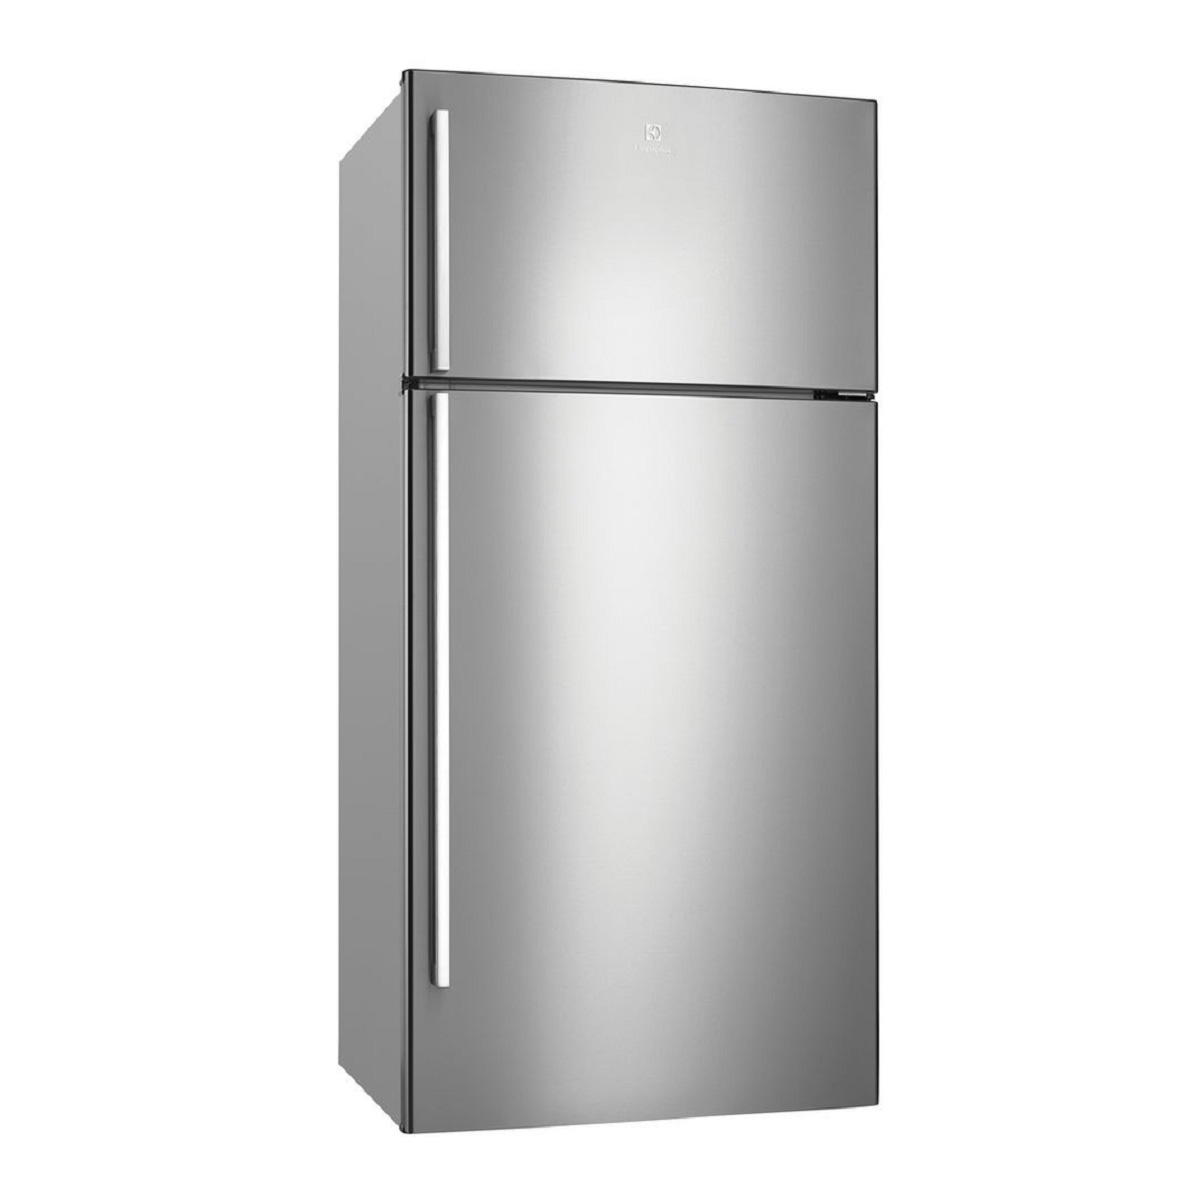 Online Fridge Electrolux Fridges And Freezers Home Clearance Appliances